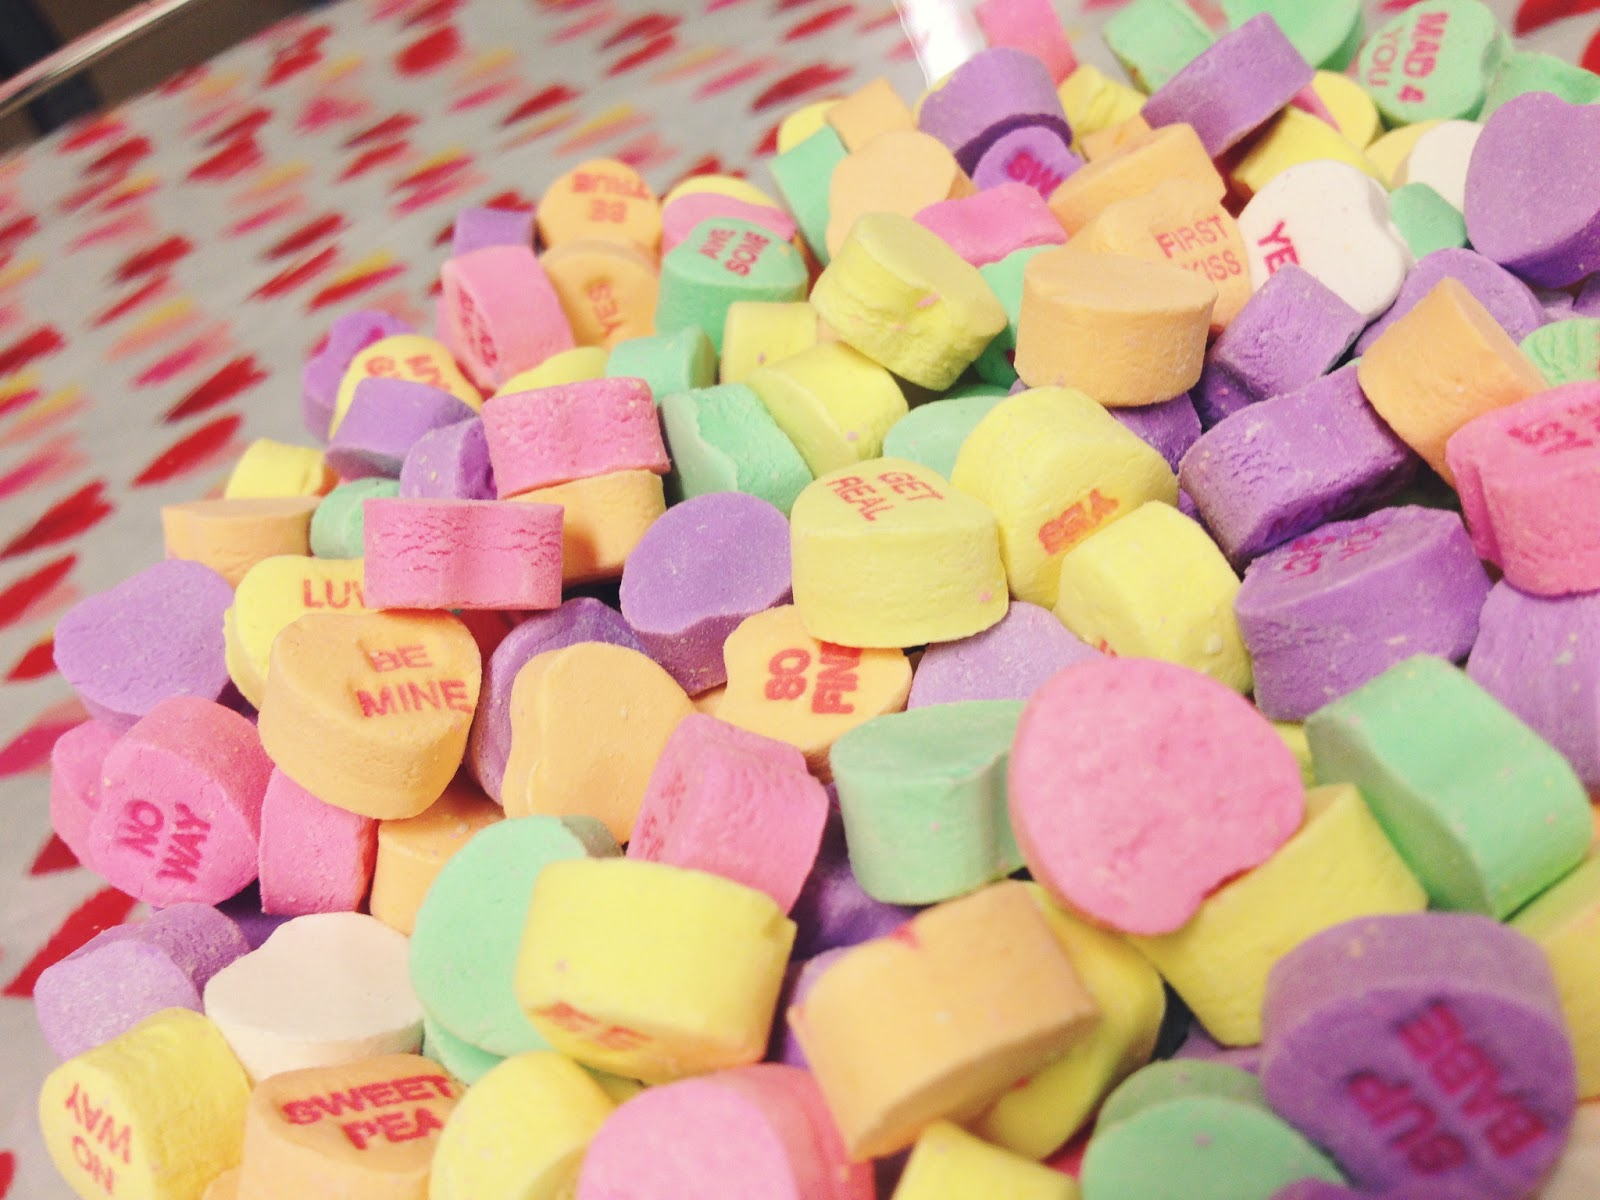 Conversation Hearts Wallpaper | www.imgkid.com - The Image ...